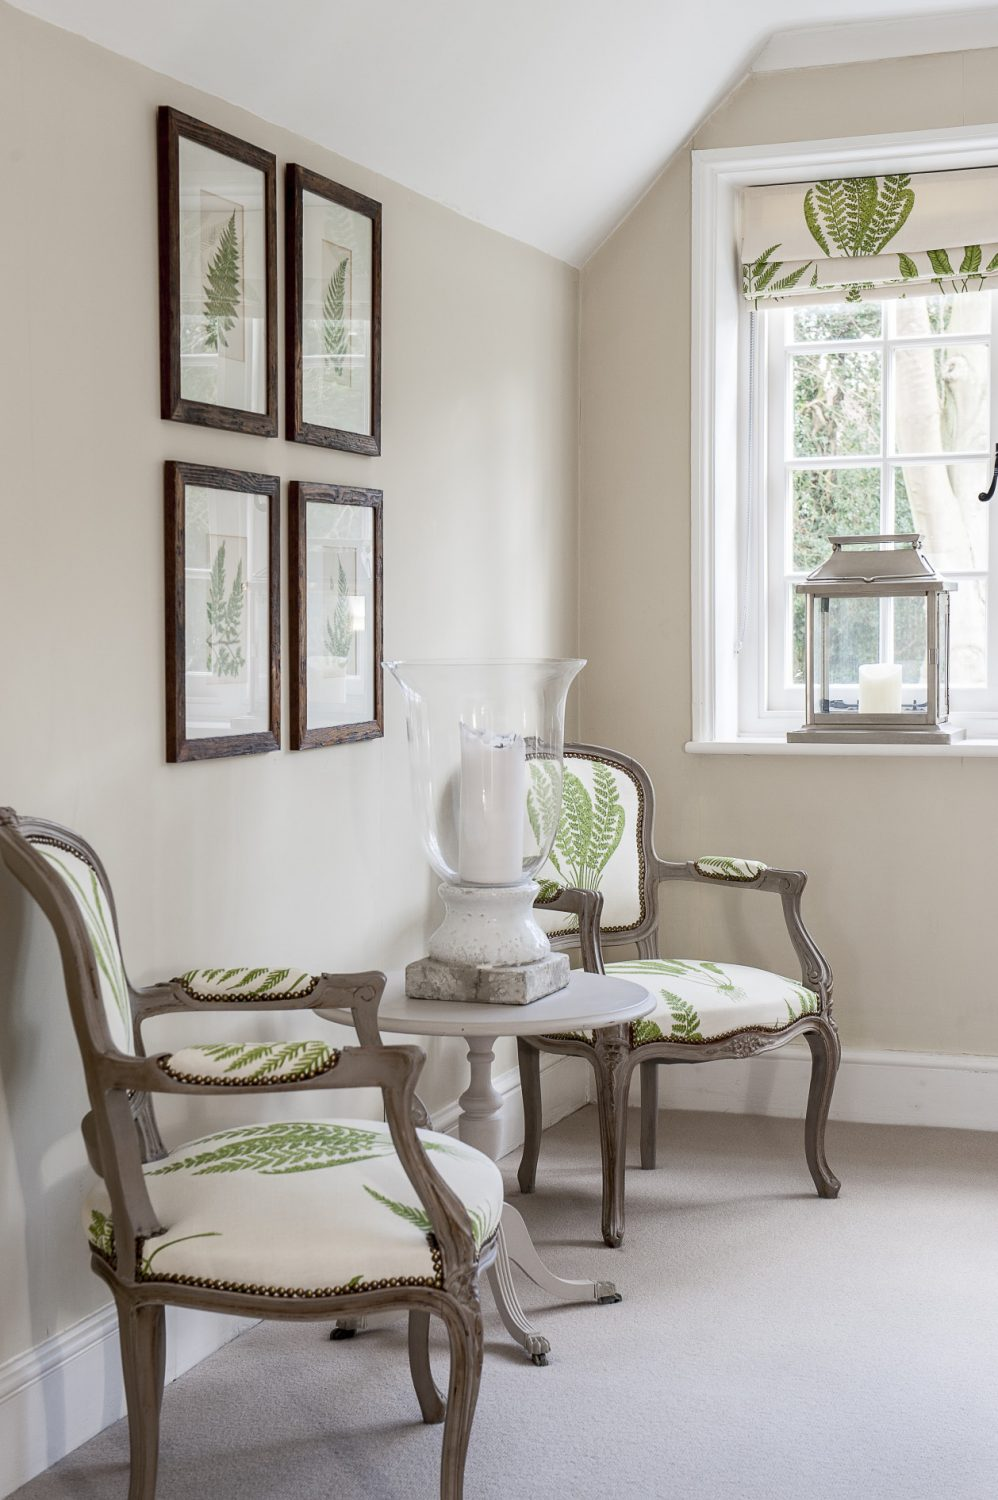 Sanderson fern fabric stands out against the muted colour scheme